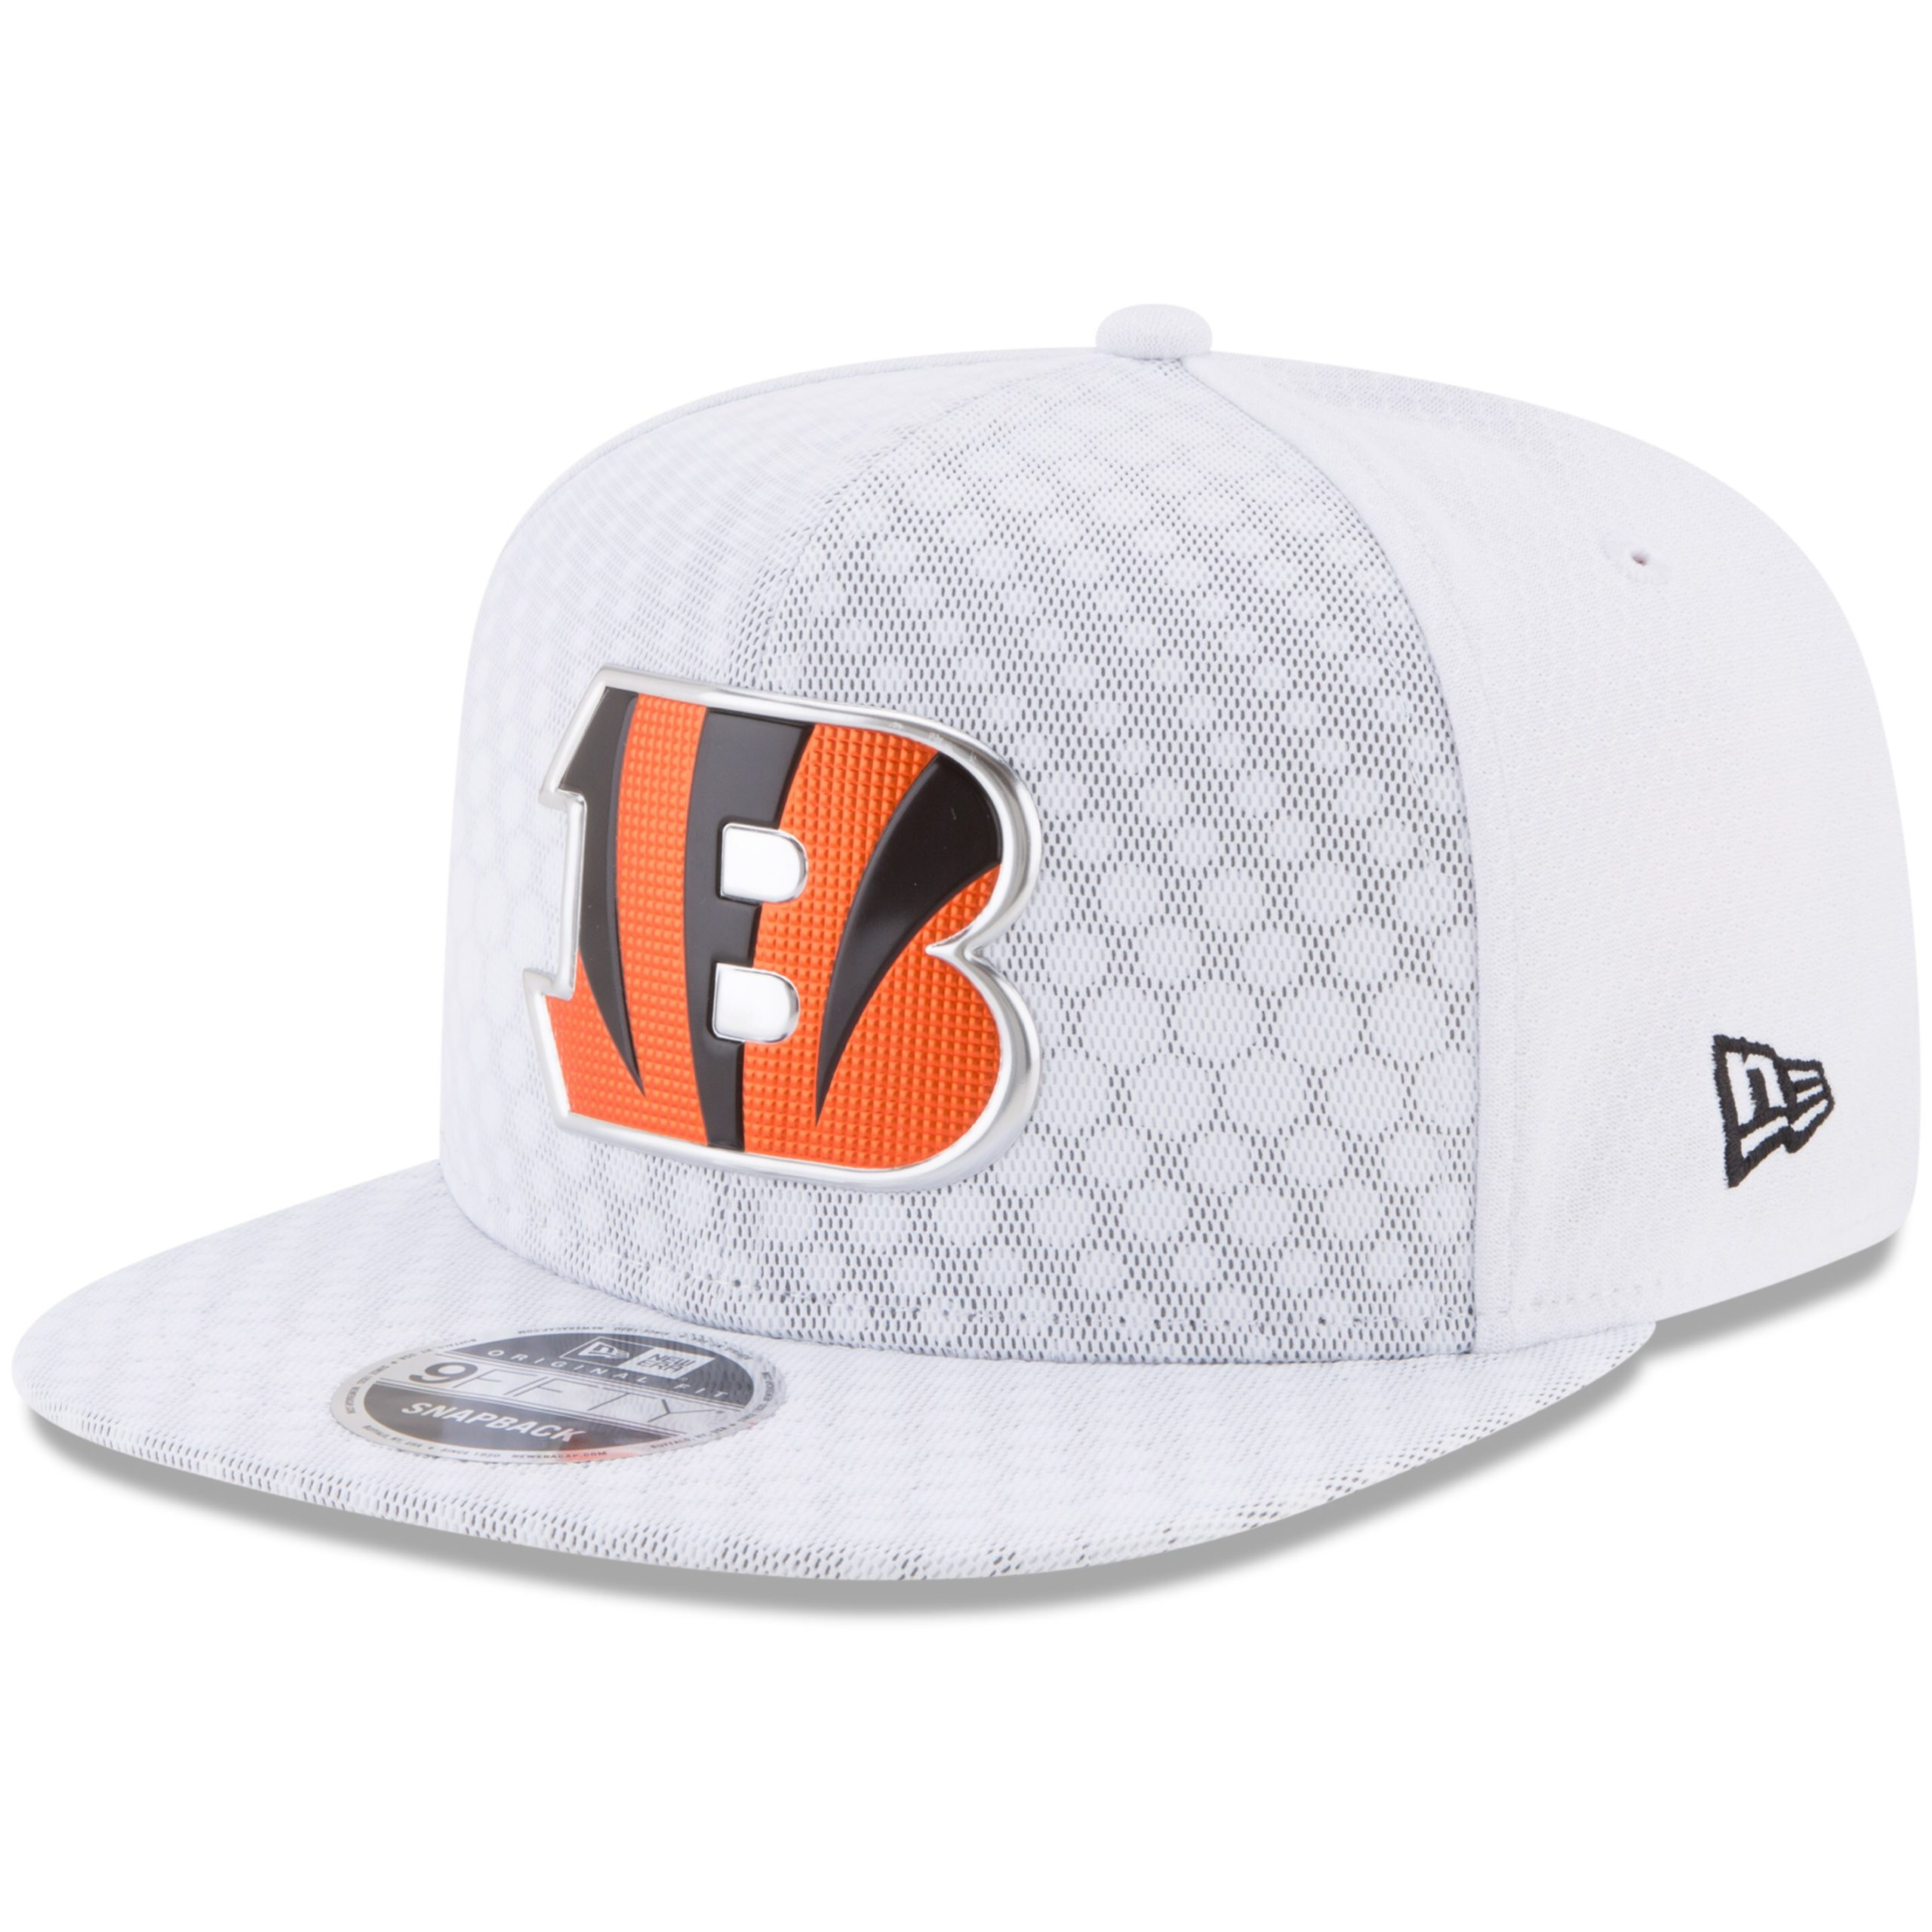 Cincinnati Bengals New Era 2017 Color Rush 9FIFTY Snapback Adjustable Hat - White